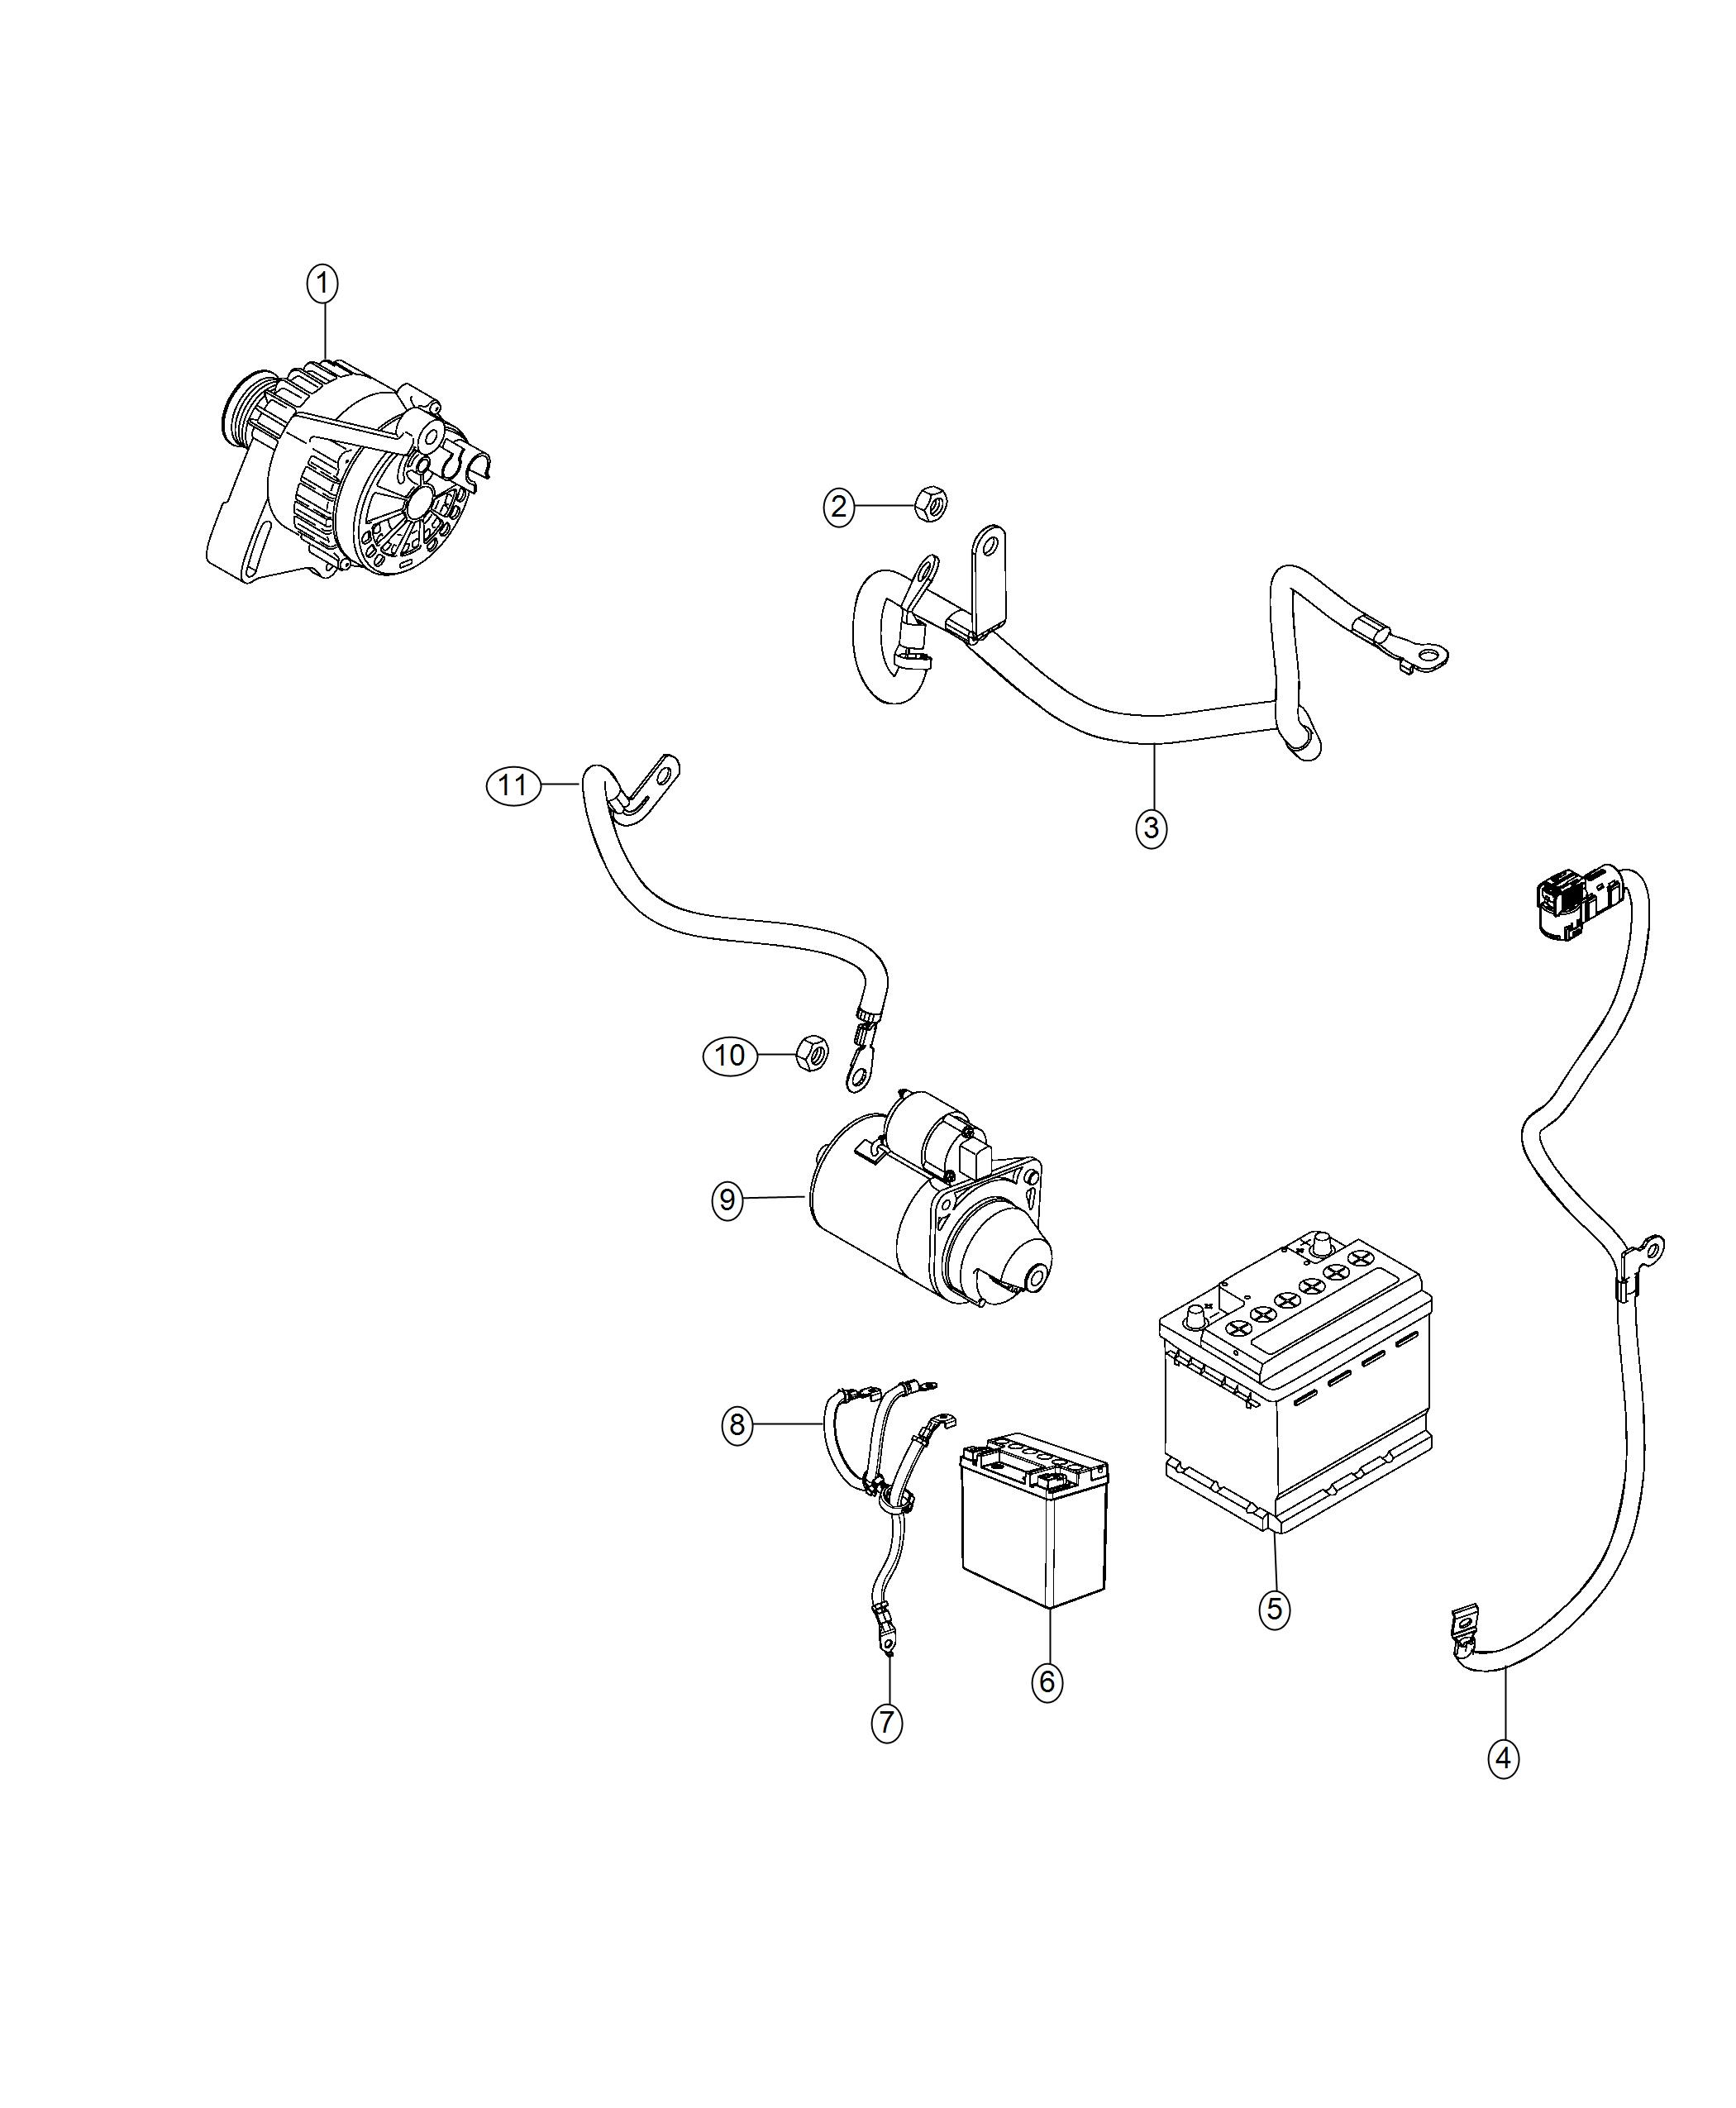 2019 Jeep Compass Wiring. Battery positive. Fca